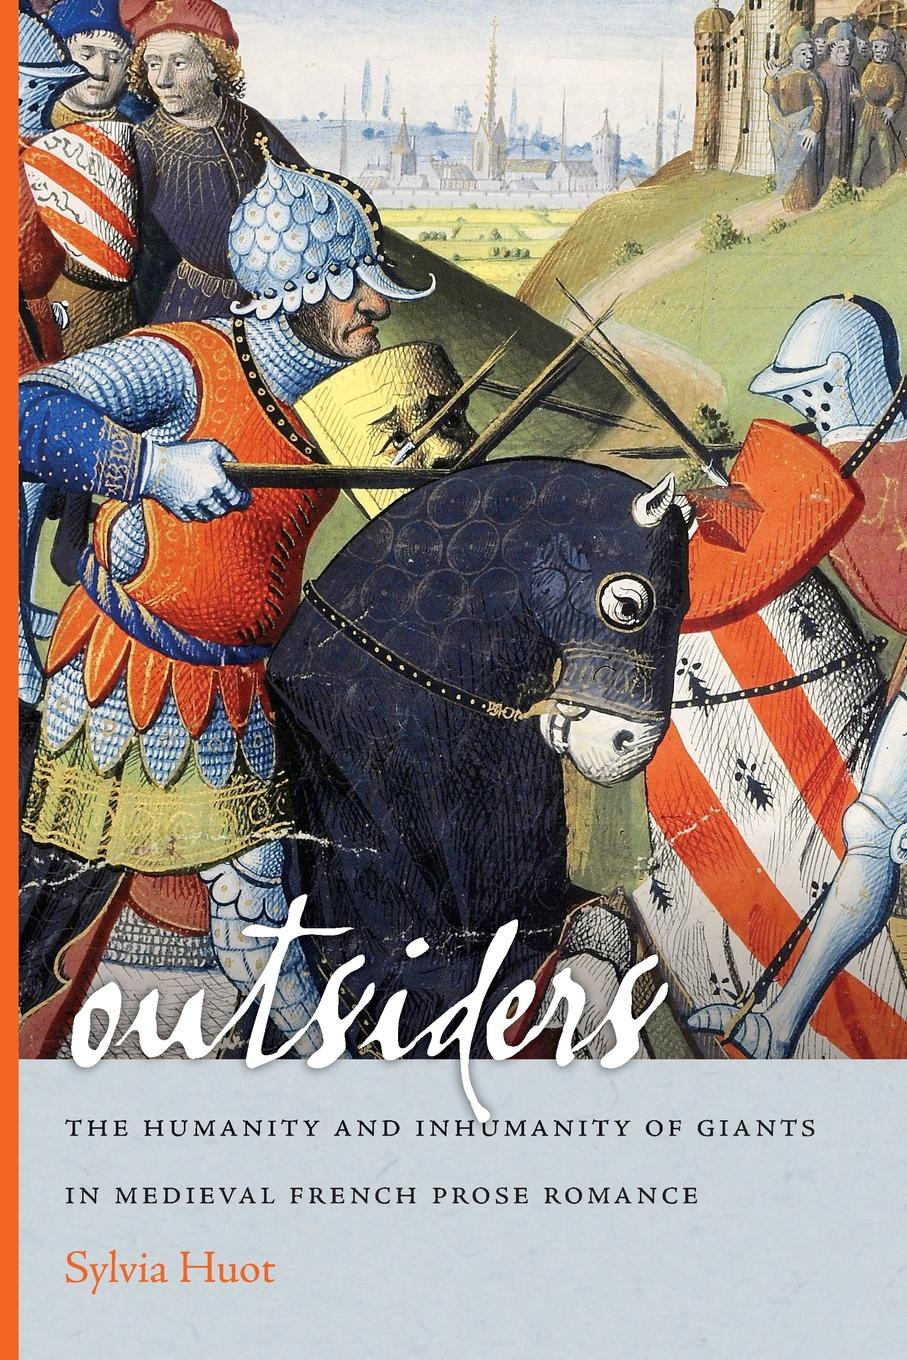 Sylvia Huot Outsiders. The Humanity and Inhumanity of Giants in Medieval French Prose Romance